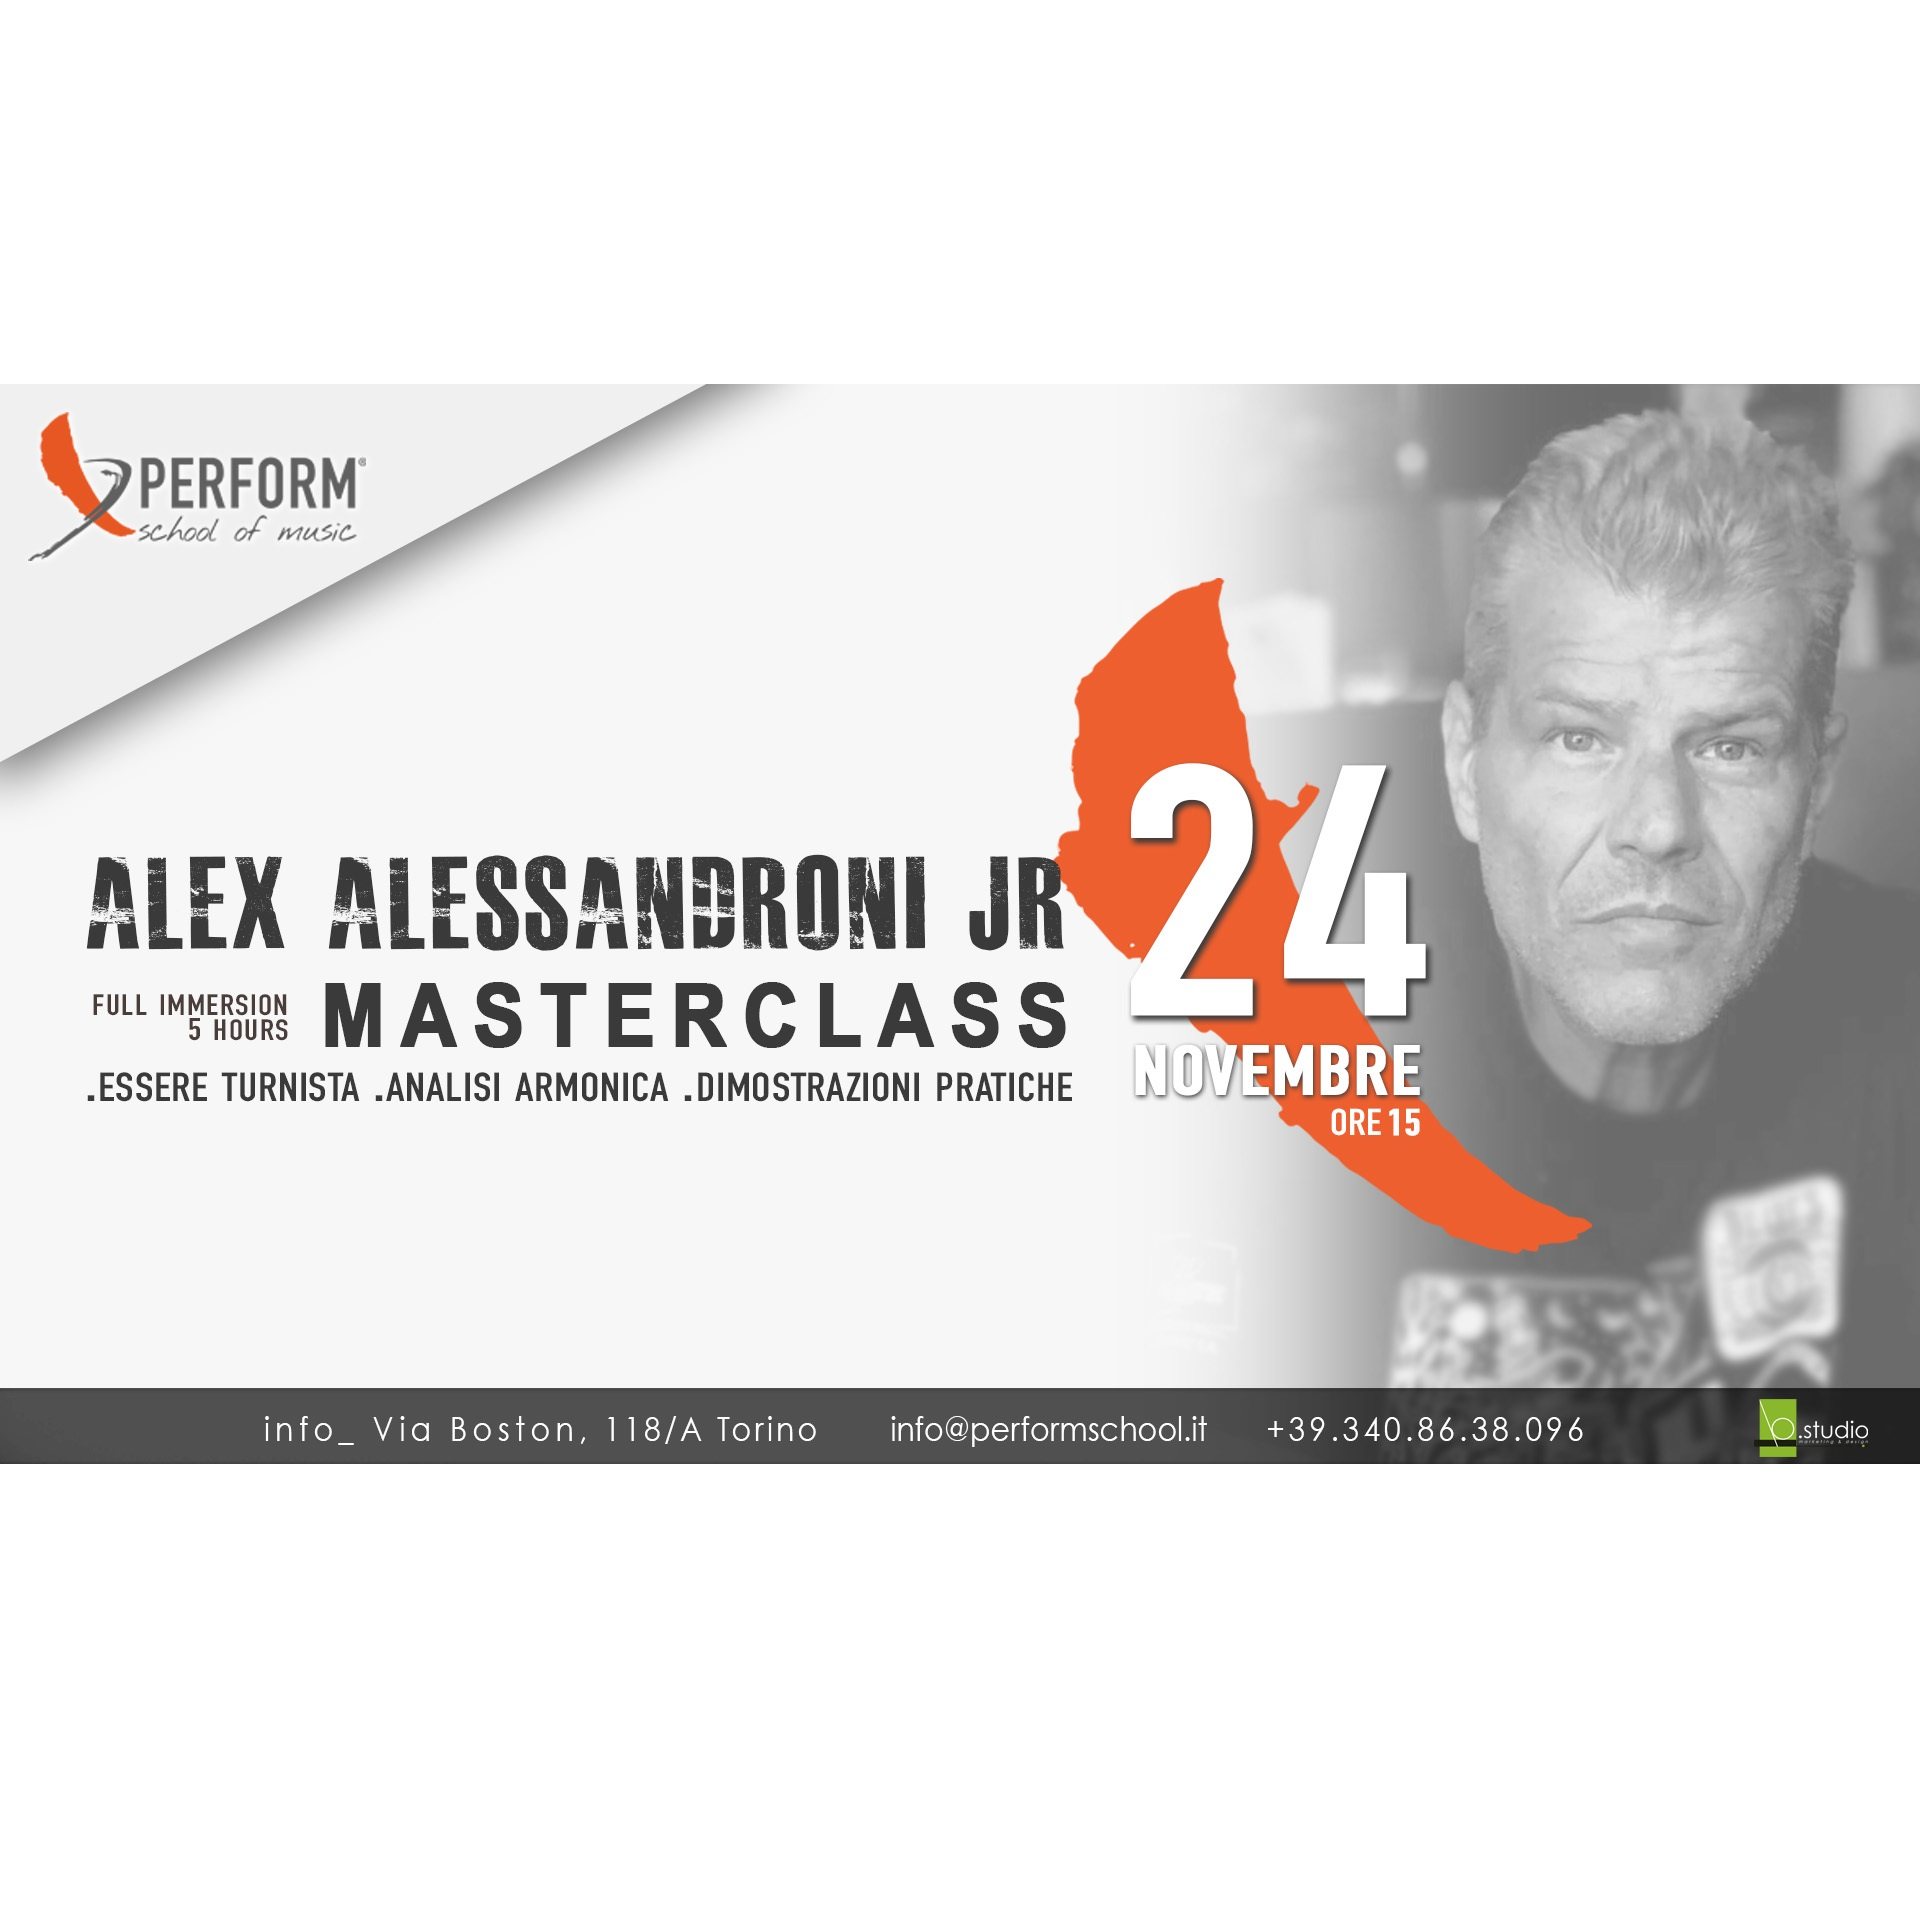 Masterclass con Alex Alessandroni Jr presso la Perform School of music Torino